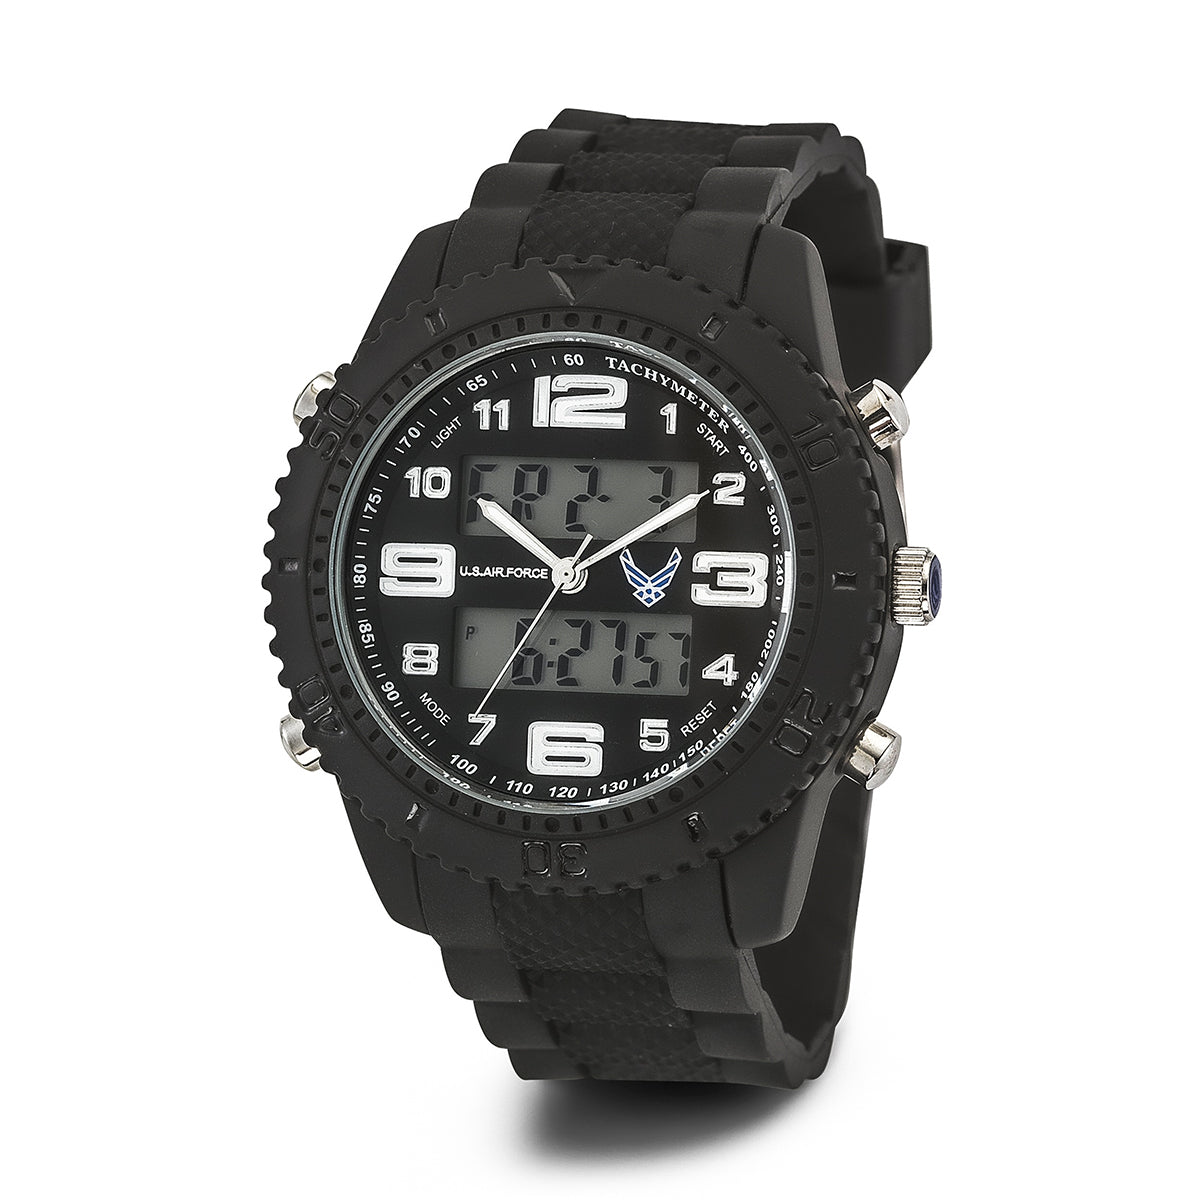 U.S. Air Force C27 | Analog-Digital Display Quartz Multi-function Watch